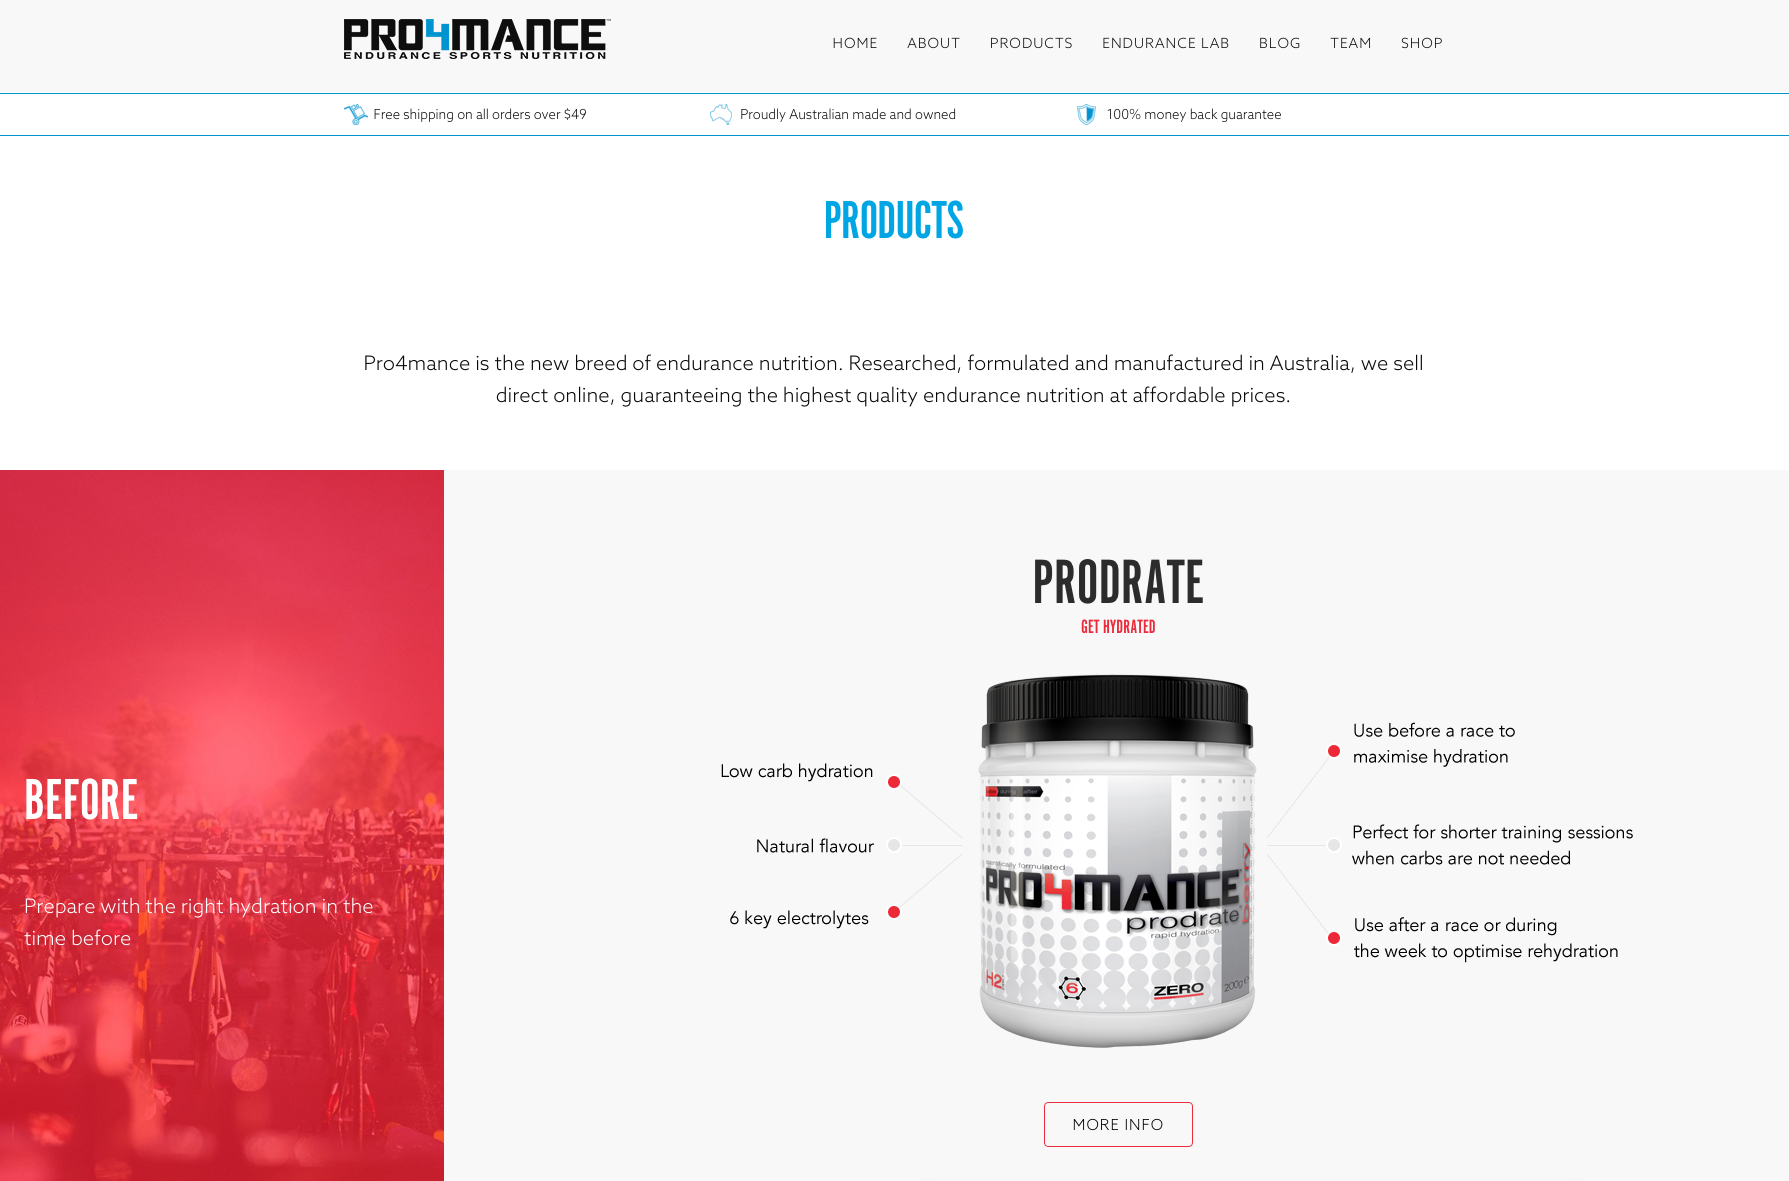 Pro4mance uses a highly customized version of Storefront.